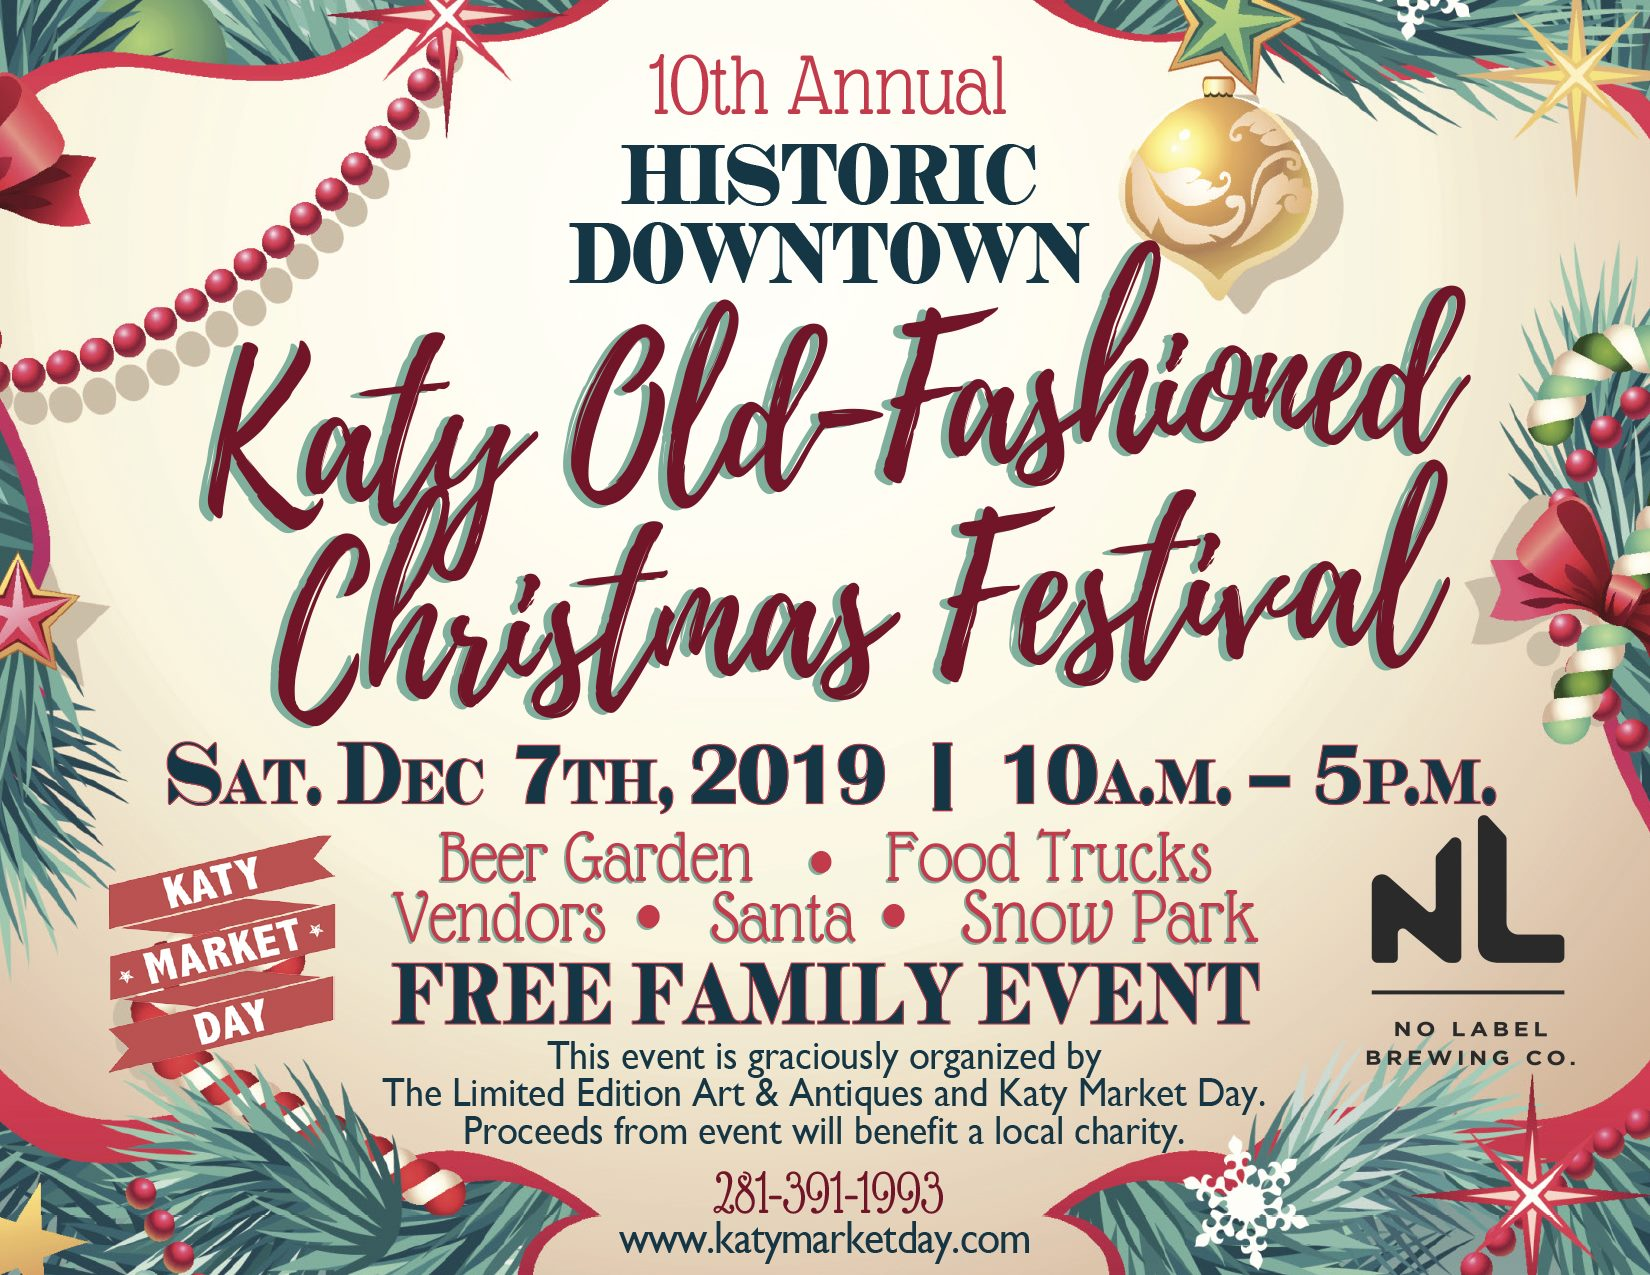 Christmas Day 2019.Katy Old Fashioned Christmas Festival 2018